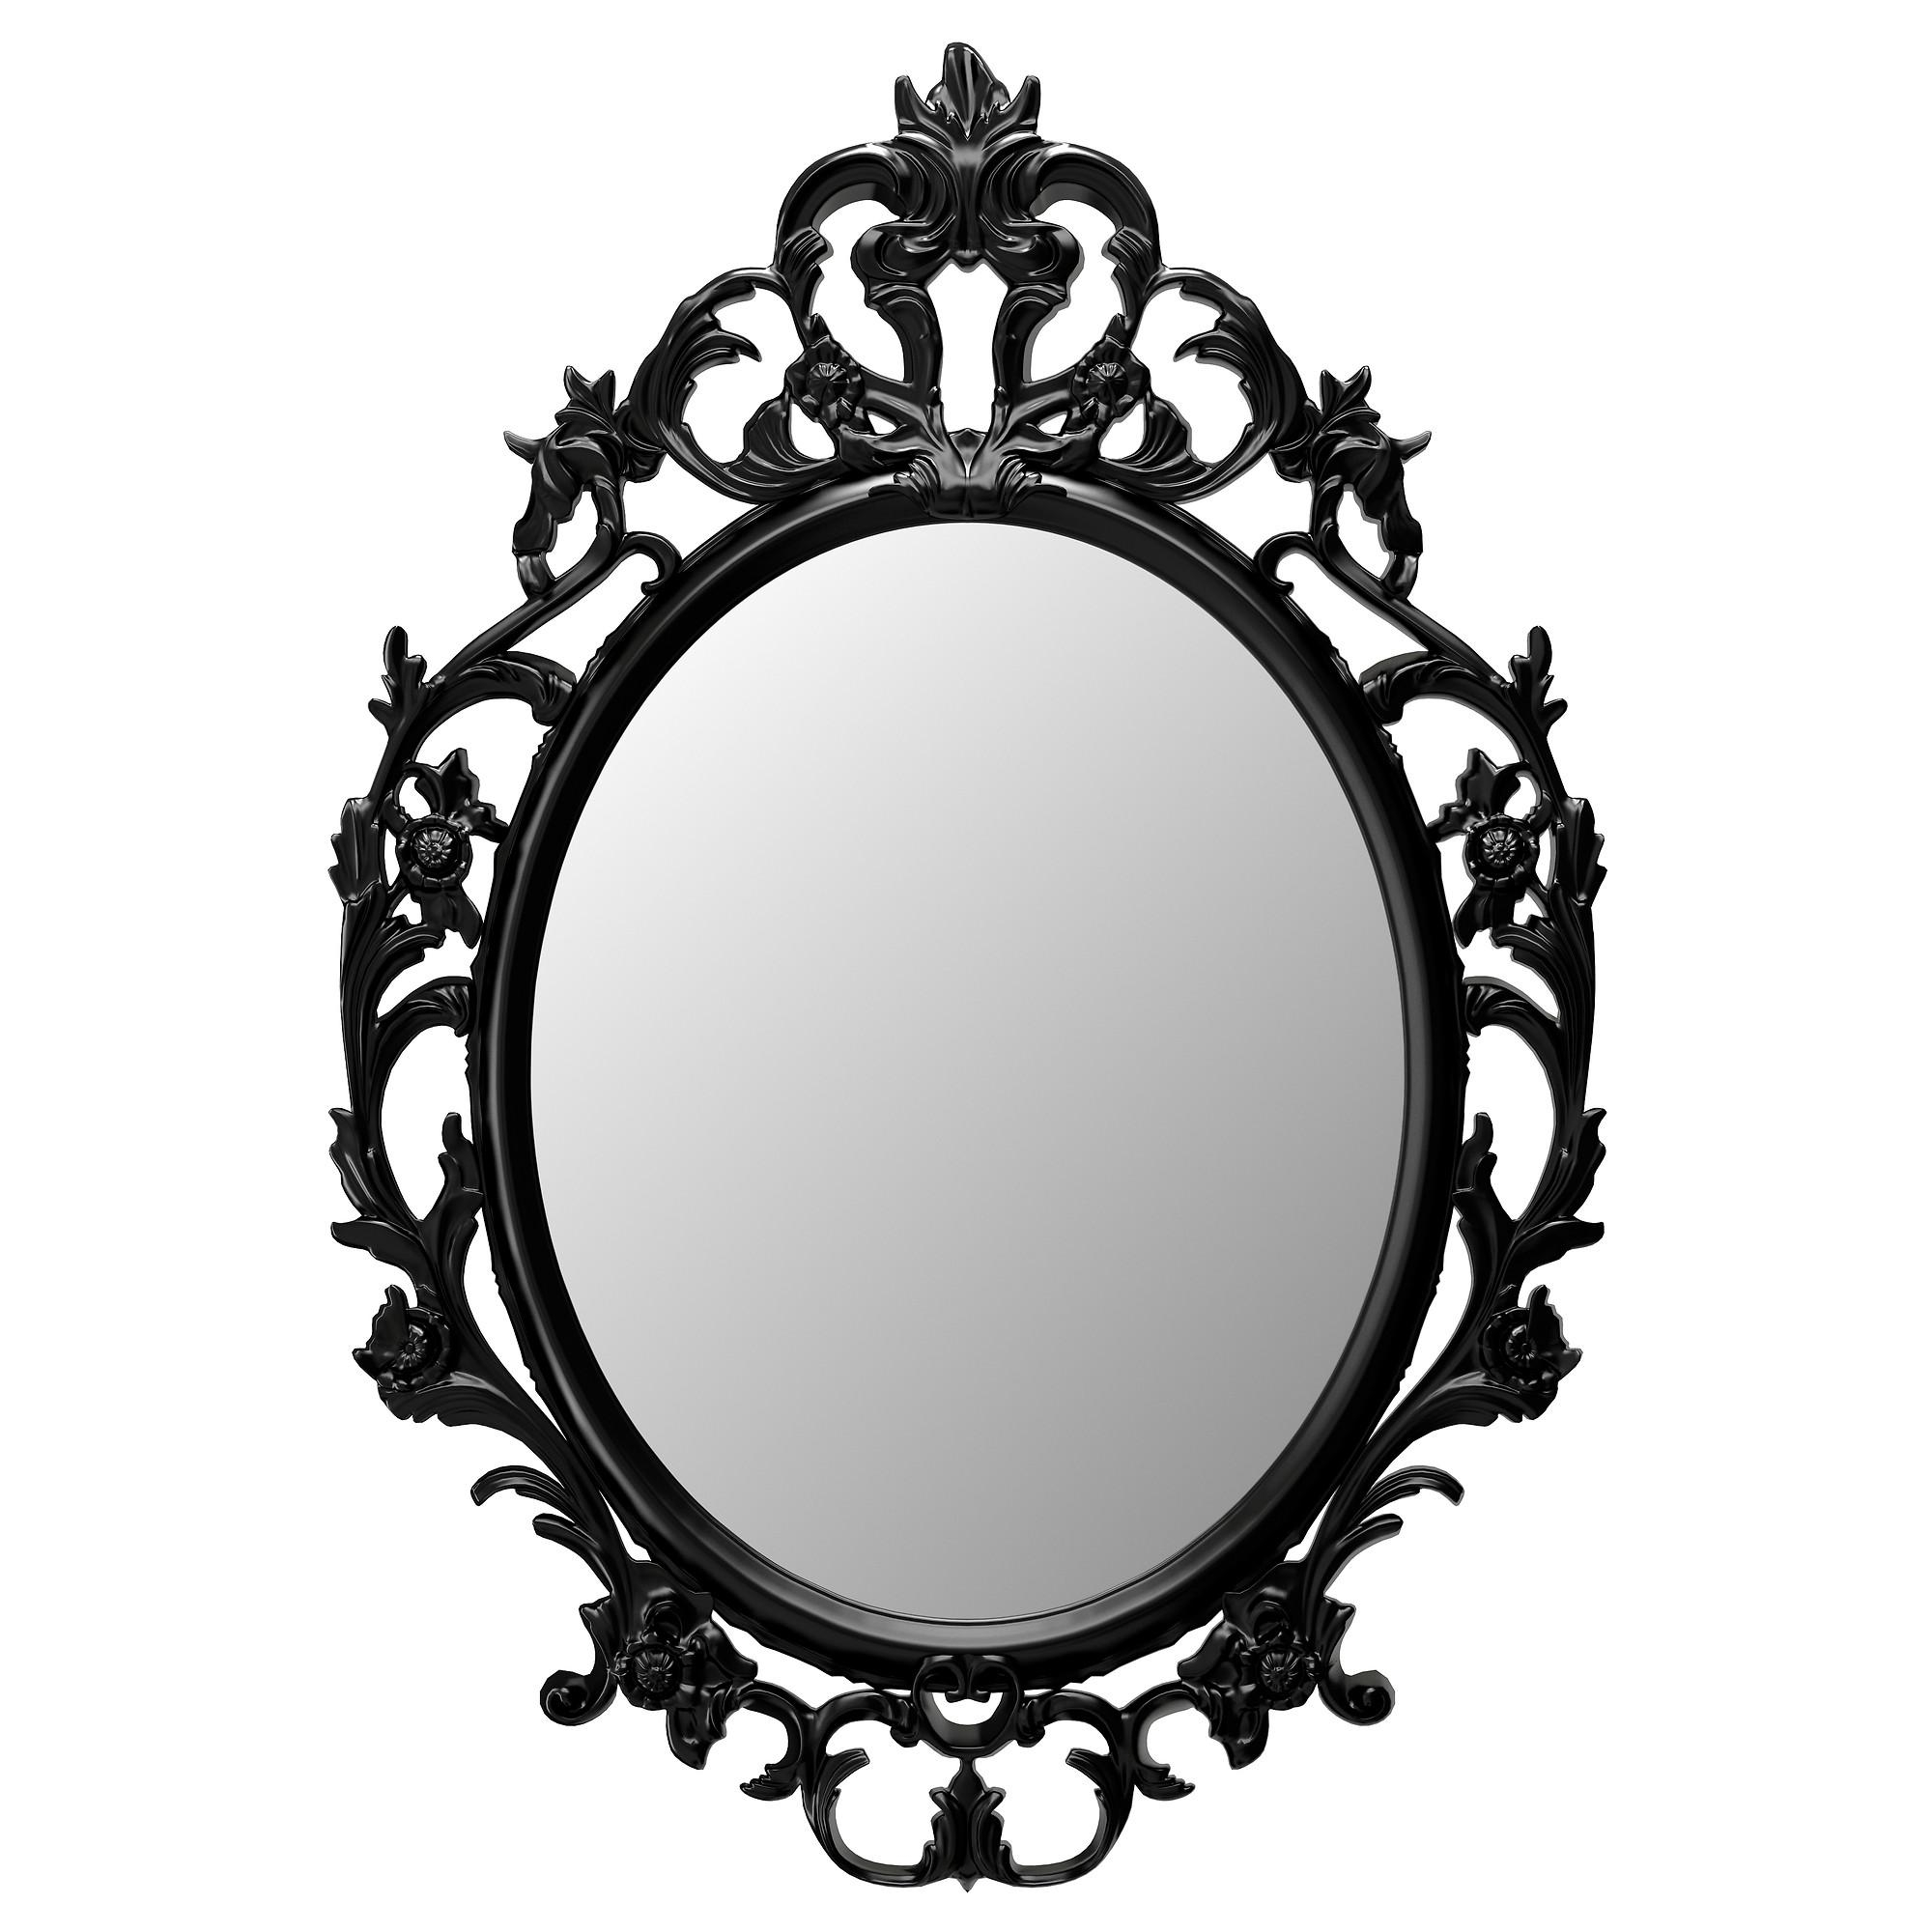 Mirrors – Ikea With Oval Shaped Wall Mirrors (Image 12 of 20)